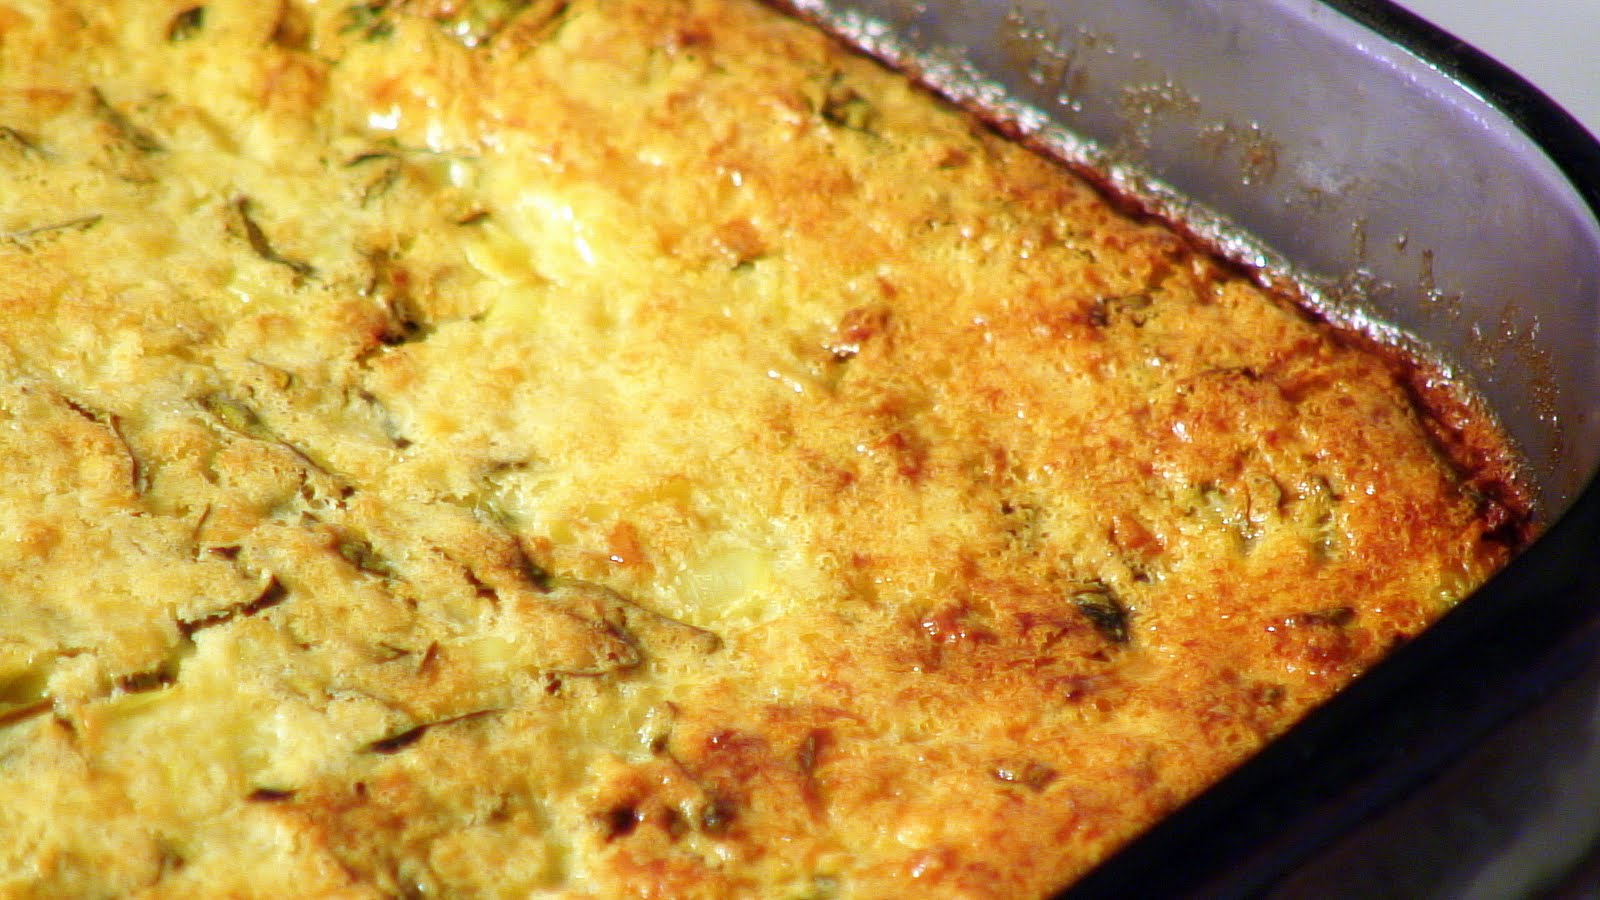 Edible Menu: Roasted Corn Pudding w/ Fresh Basil